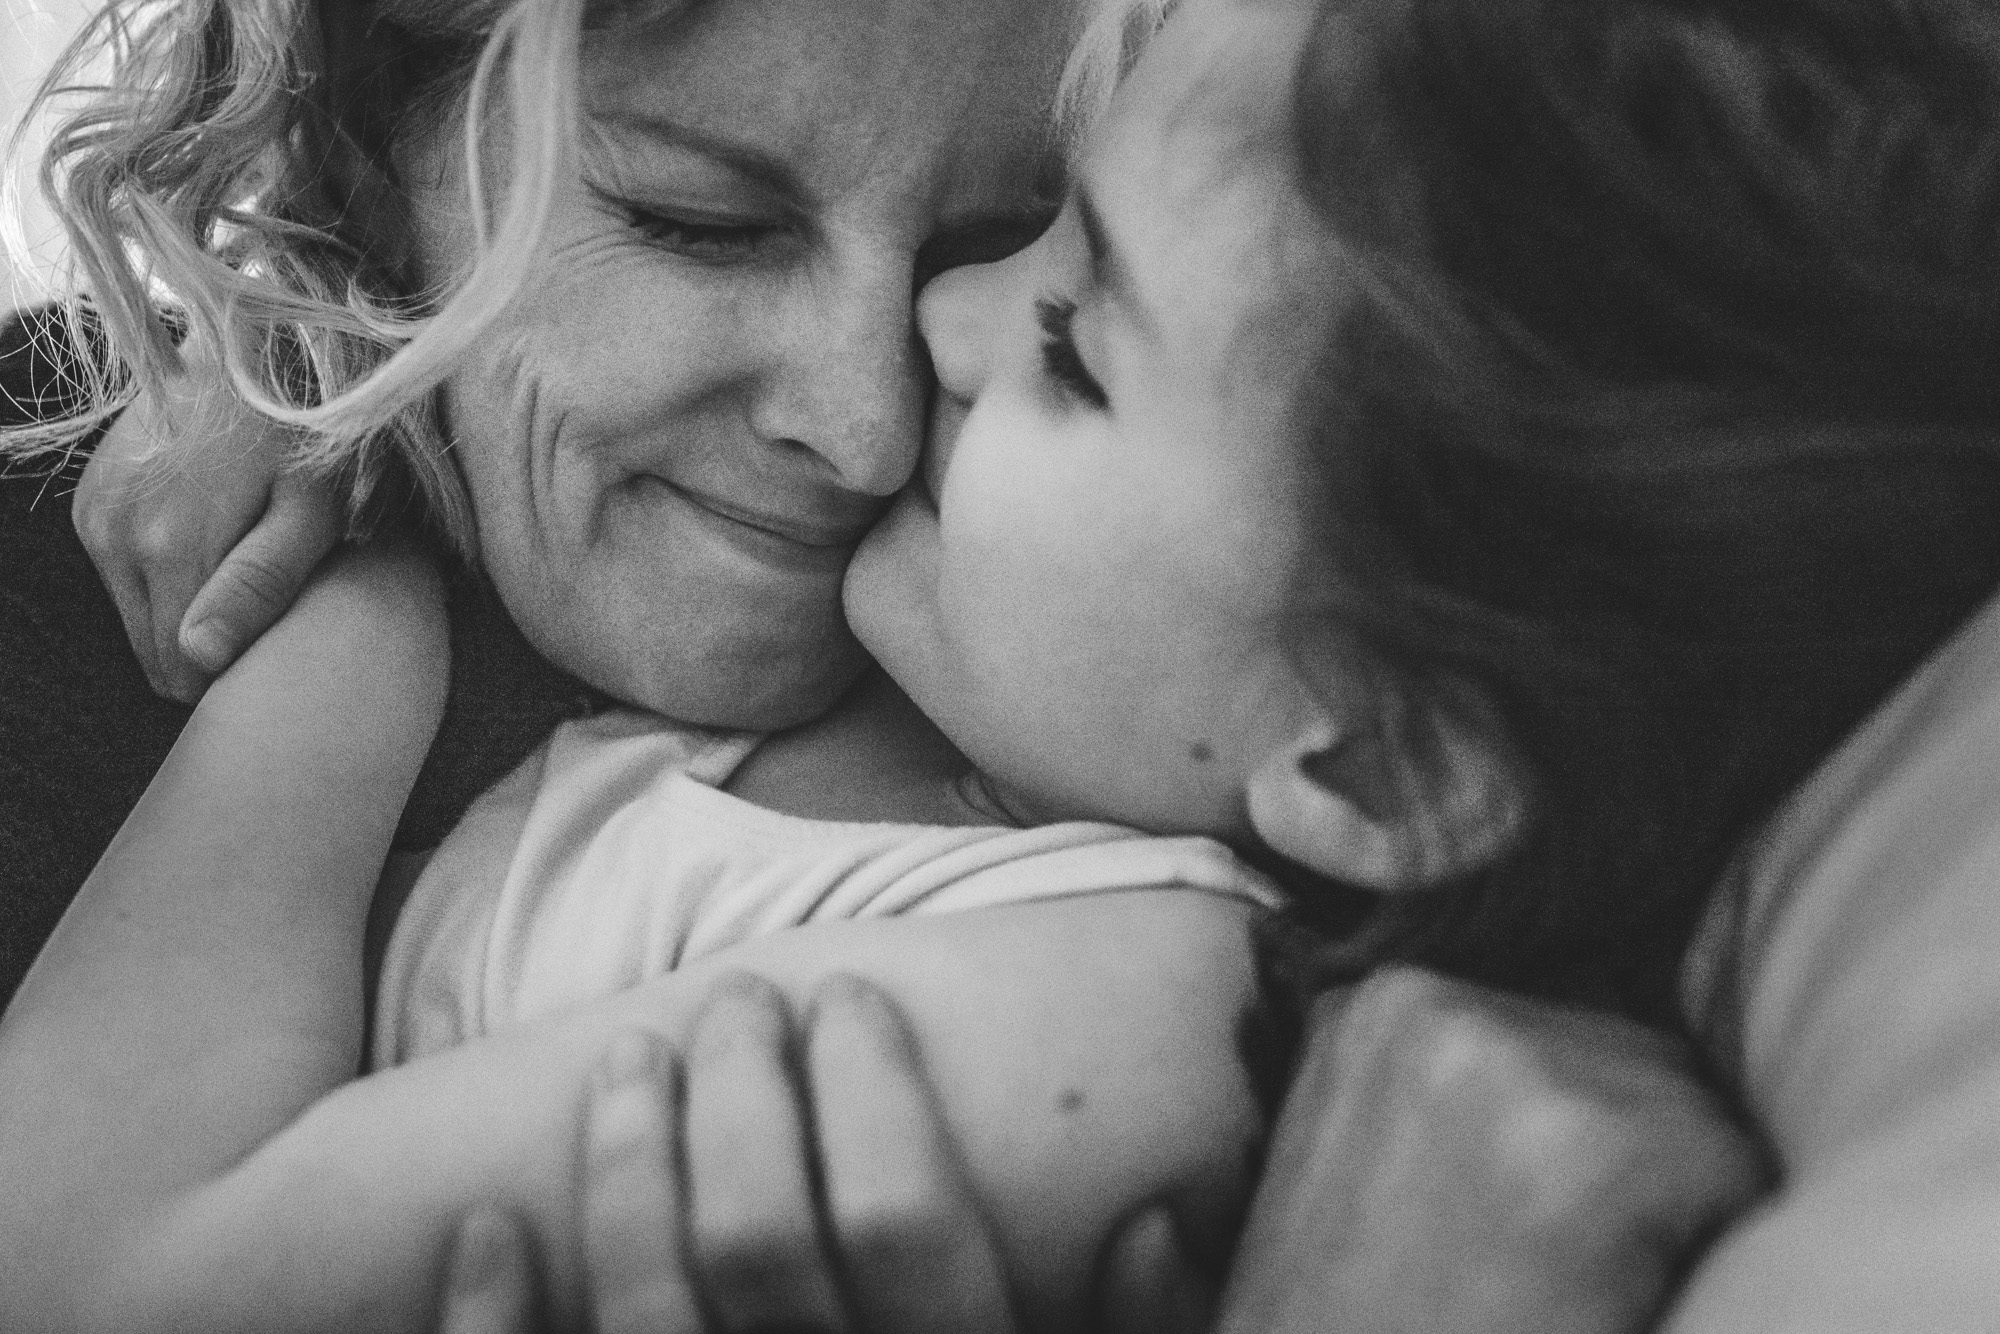 Black and white super close-up photo of a mom and her 6-year-old daughter hugging each other and smiling lovingly. Taken at their home in Stapleton, Colorado during their in-home photography session.